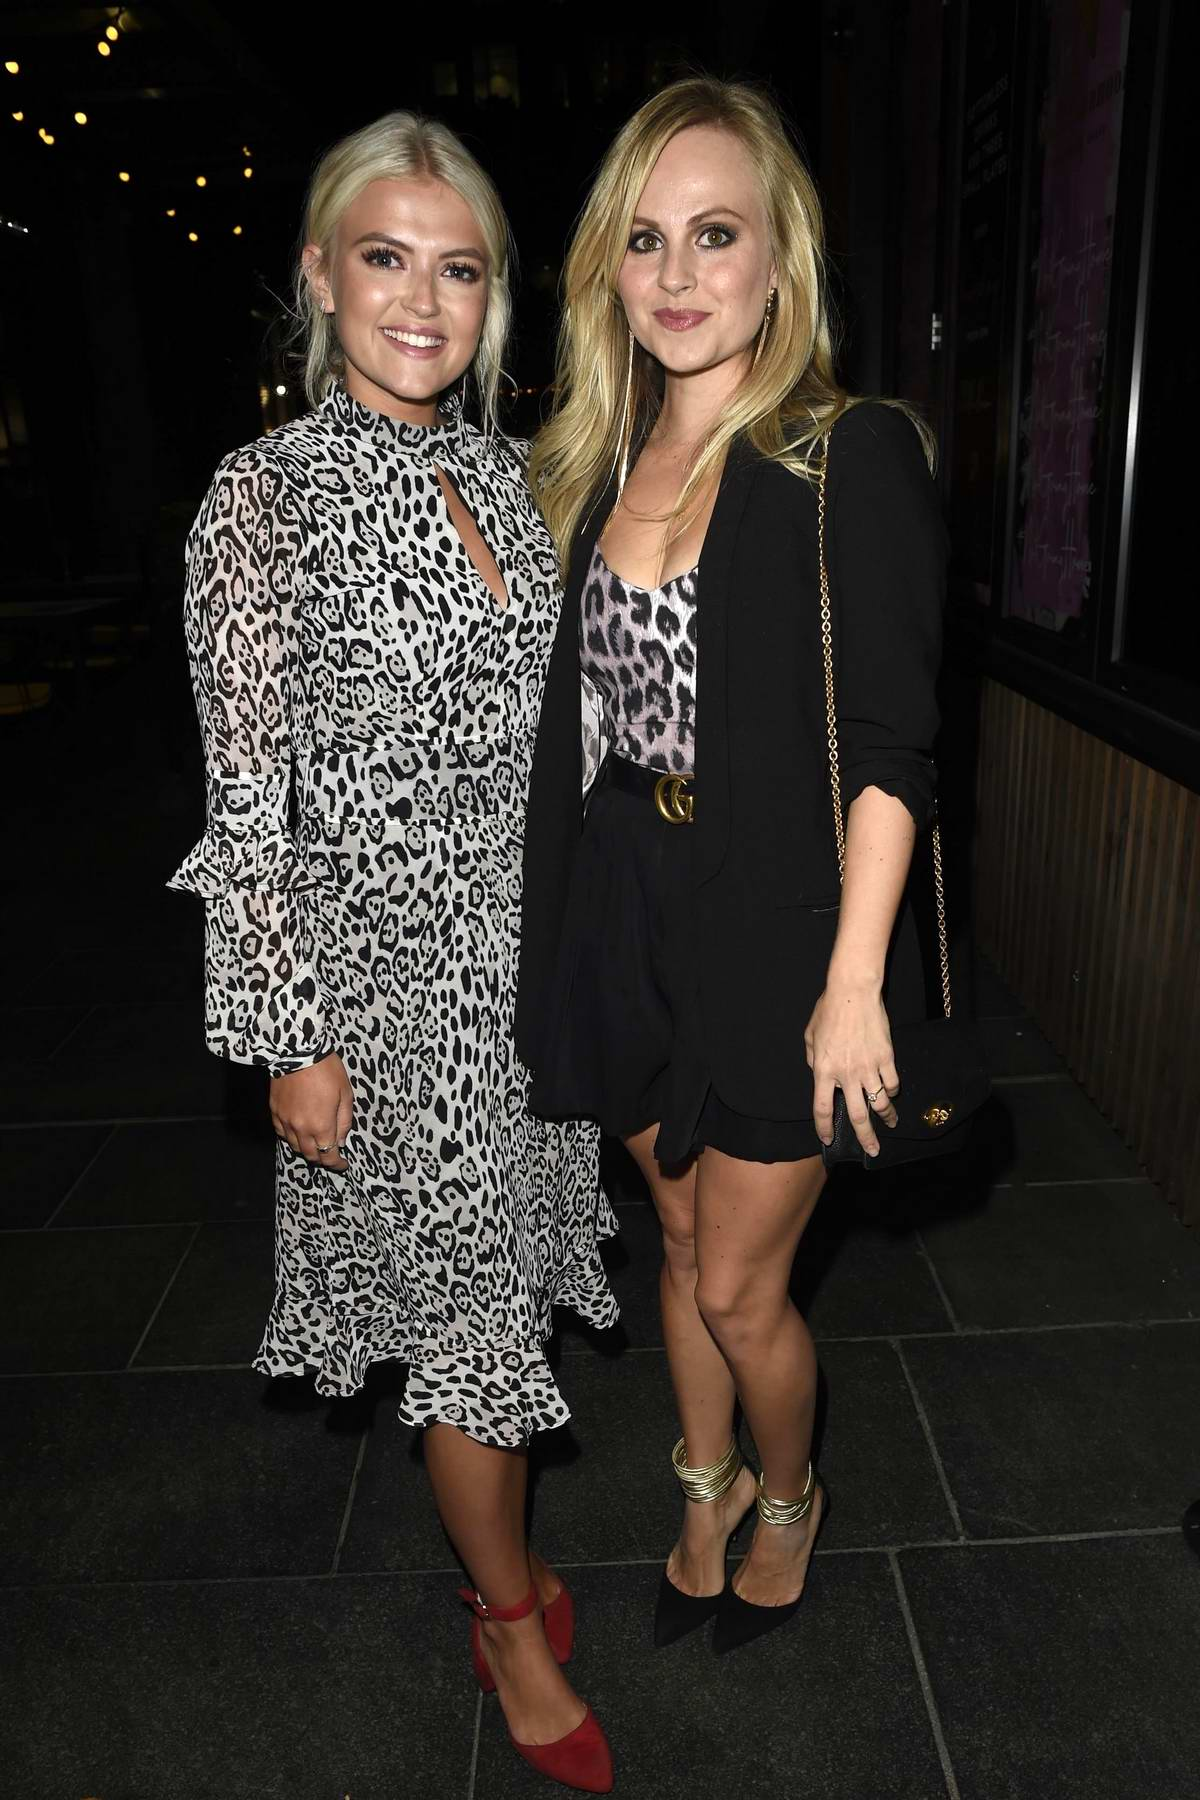 Lucy Fallon and Tina O'Brien at the Soigne Make Up Brush Launch at Neighbourhood in Manchester, UK